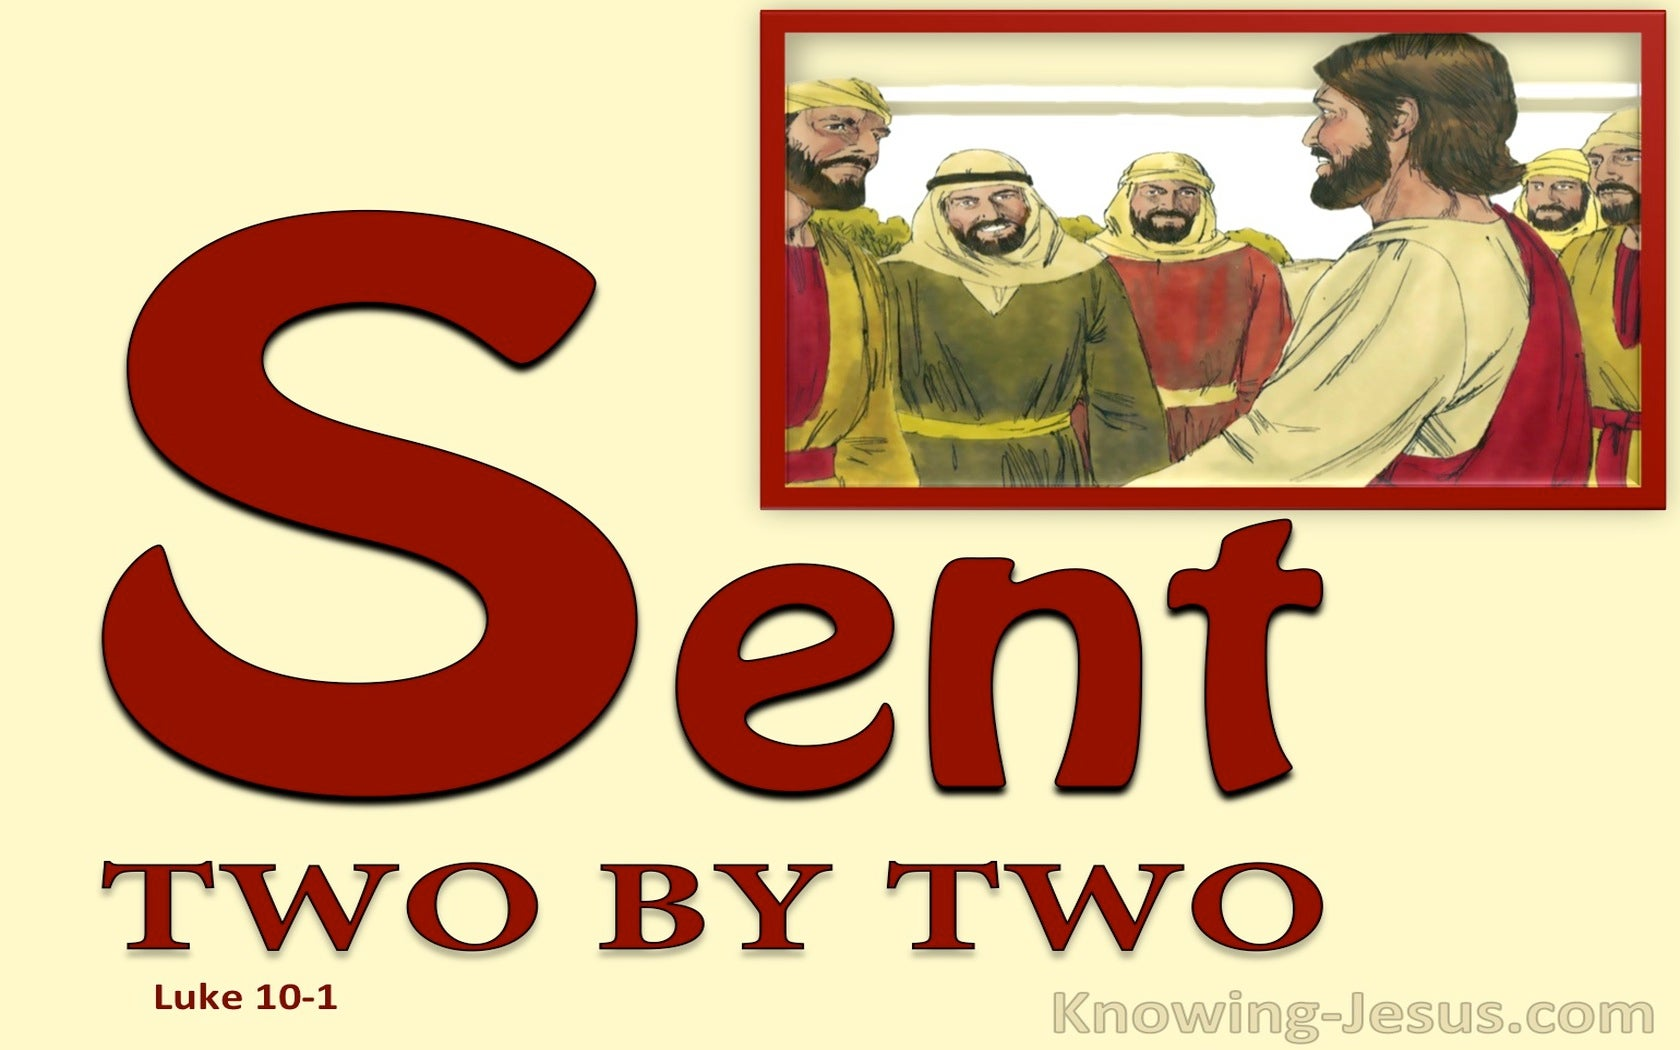 Luke 10:1 10:1 Sent Two By Two (red)